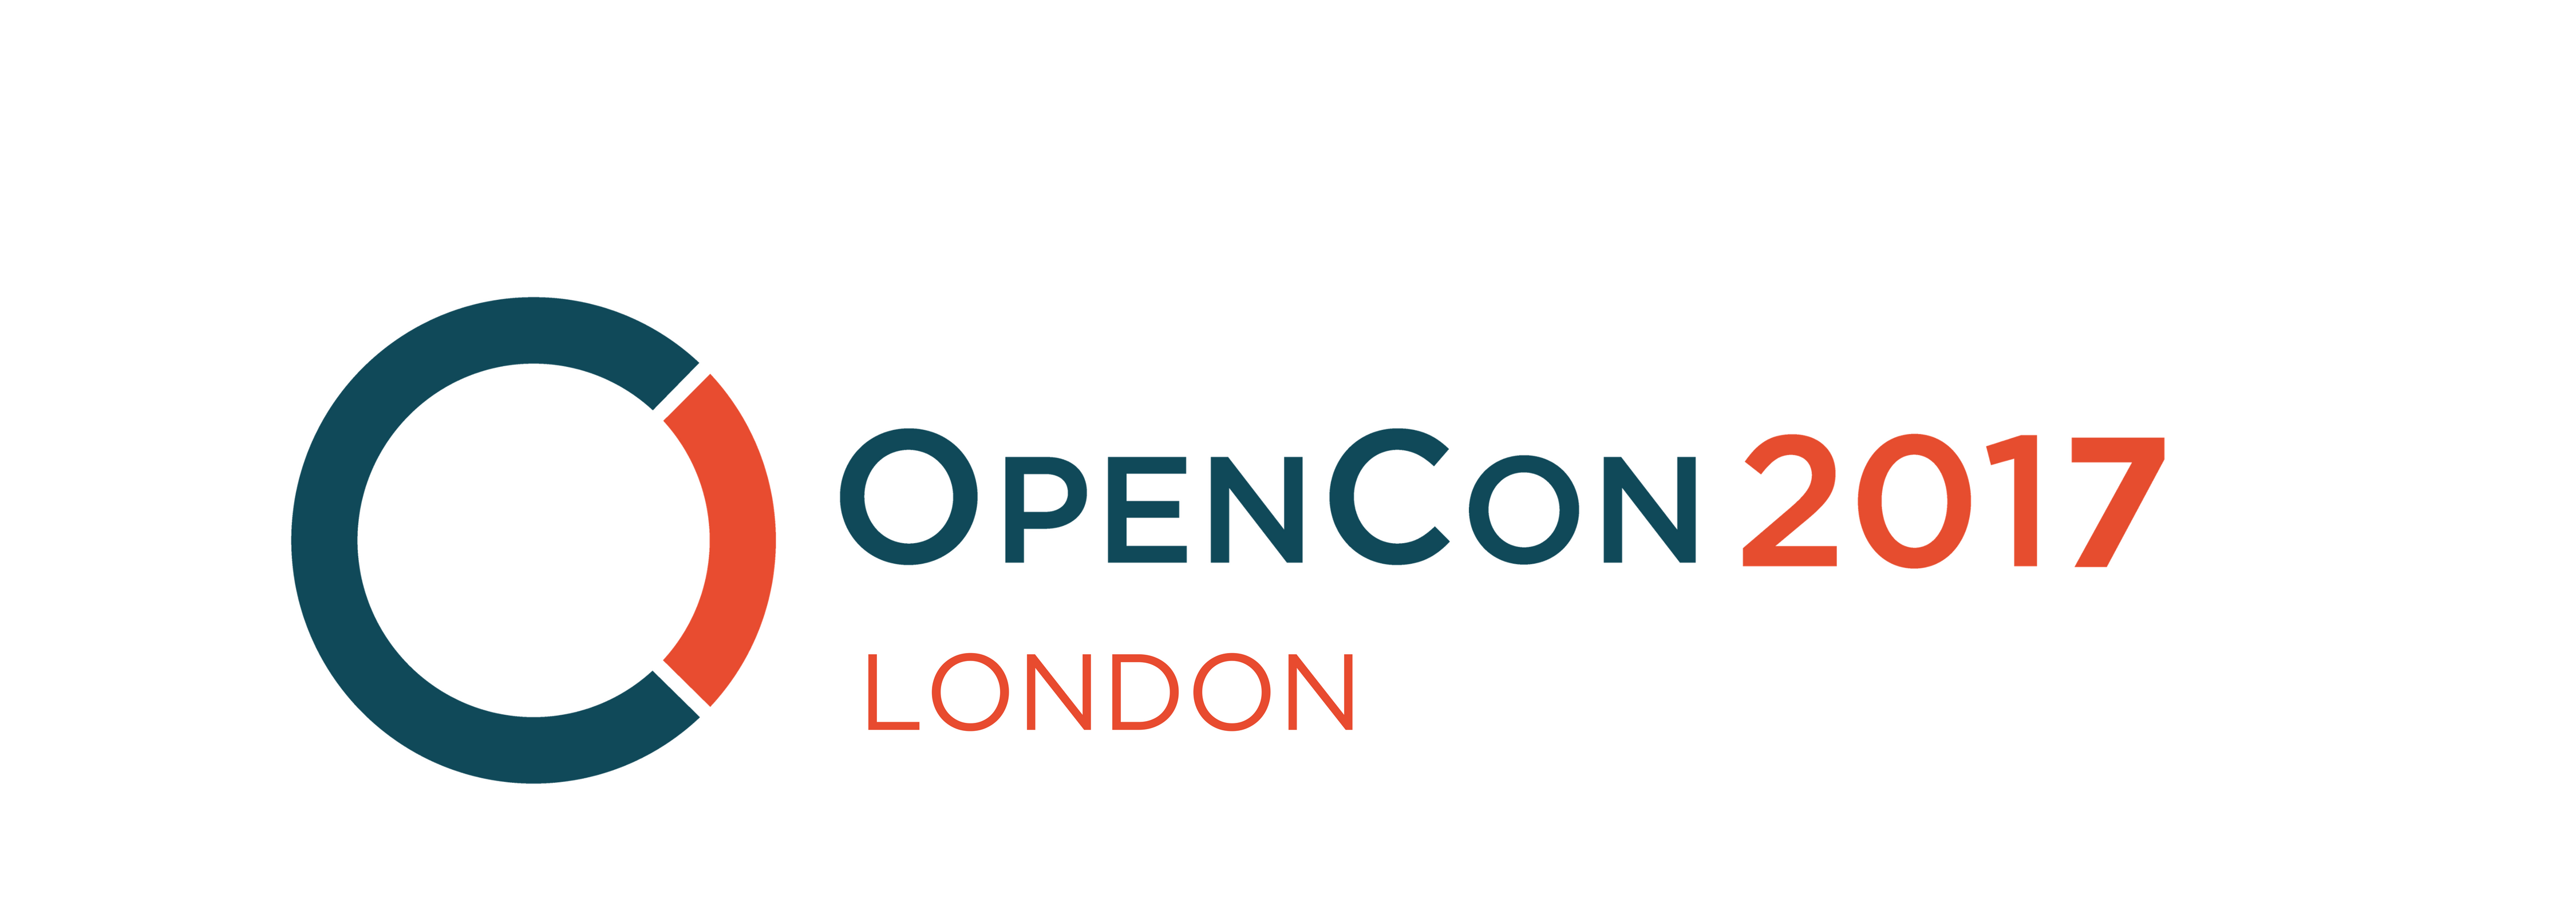 Summary of OpenCon2017 London